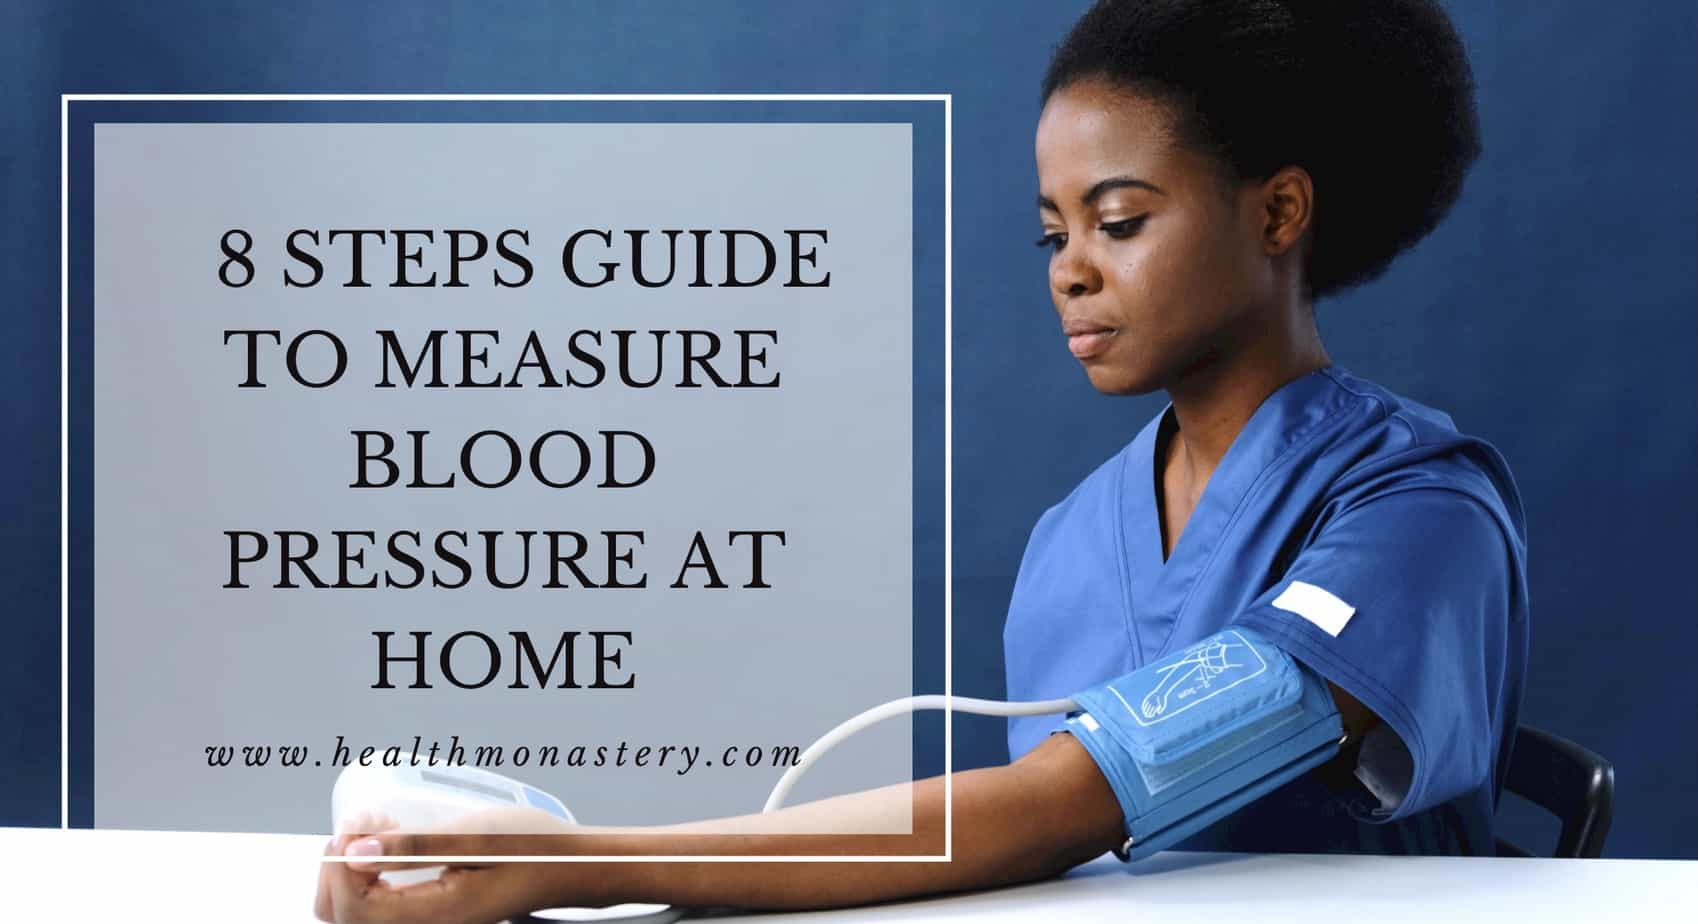 How to measure blood pressure at home correctly.